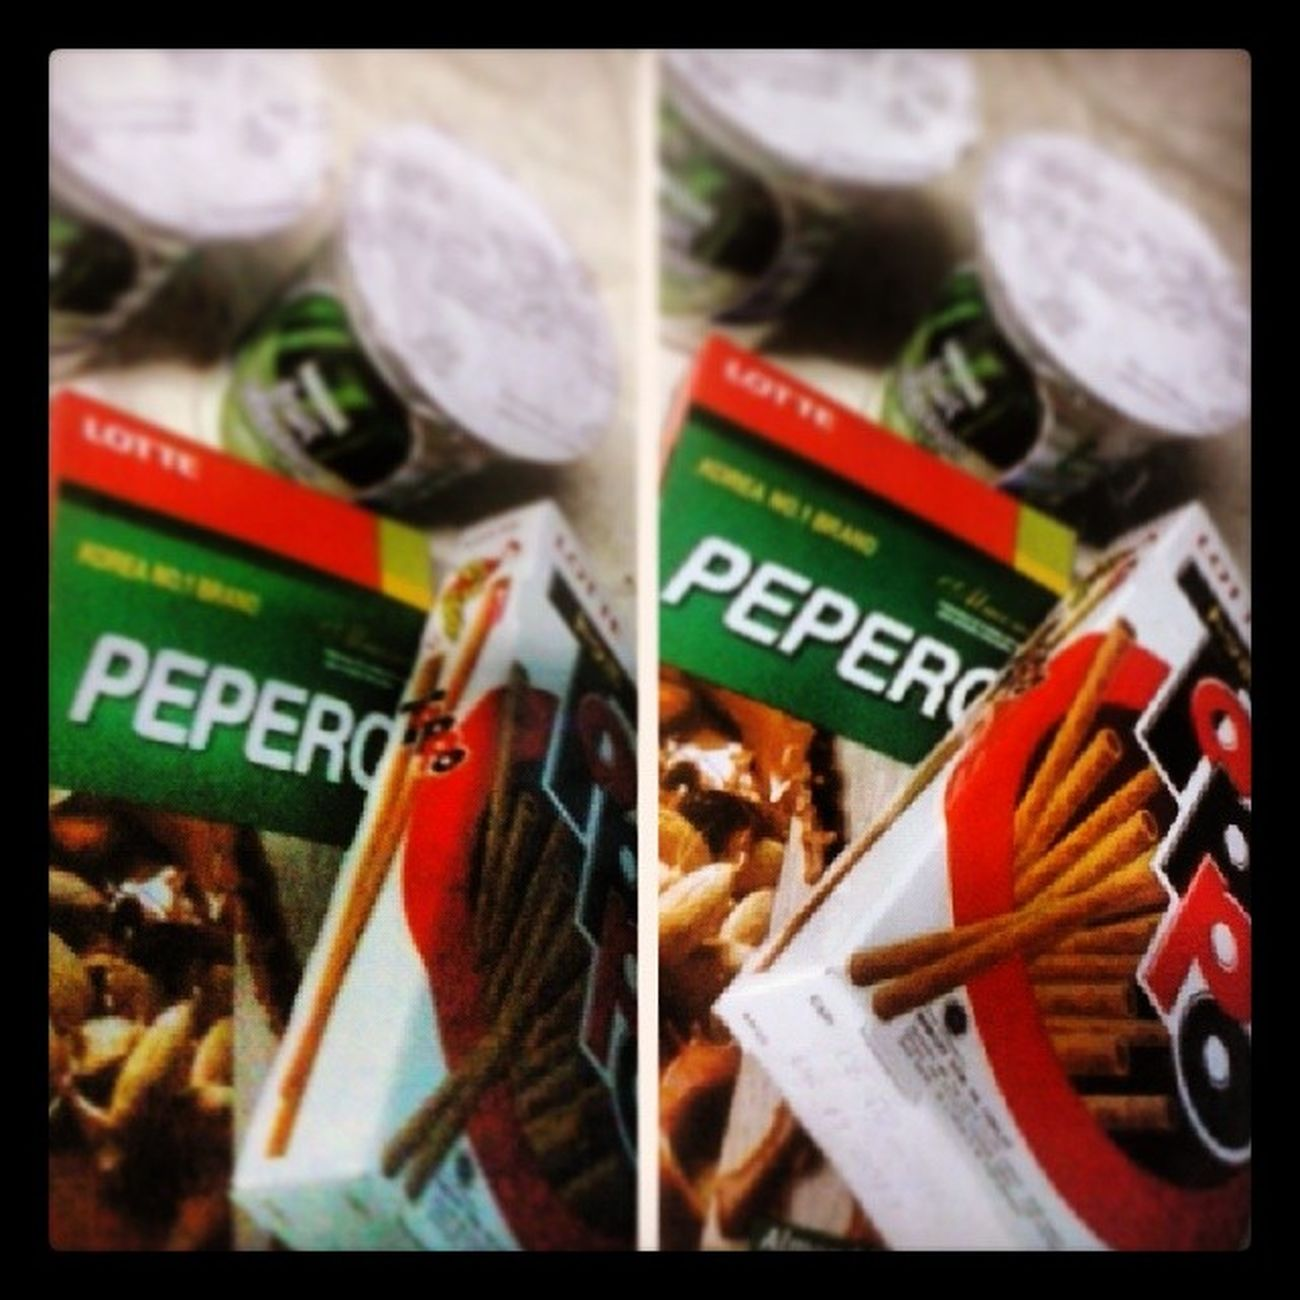 LATE DINNER/MIDNIGHT SNACK. Walang diet, diet sa taong gutom. Lol! Toppo Pepero Nestlefruitselection